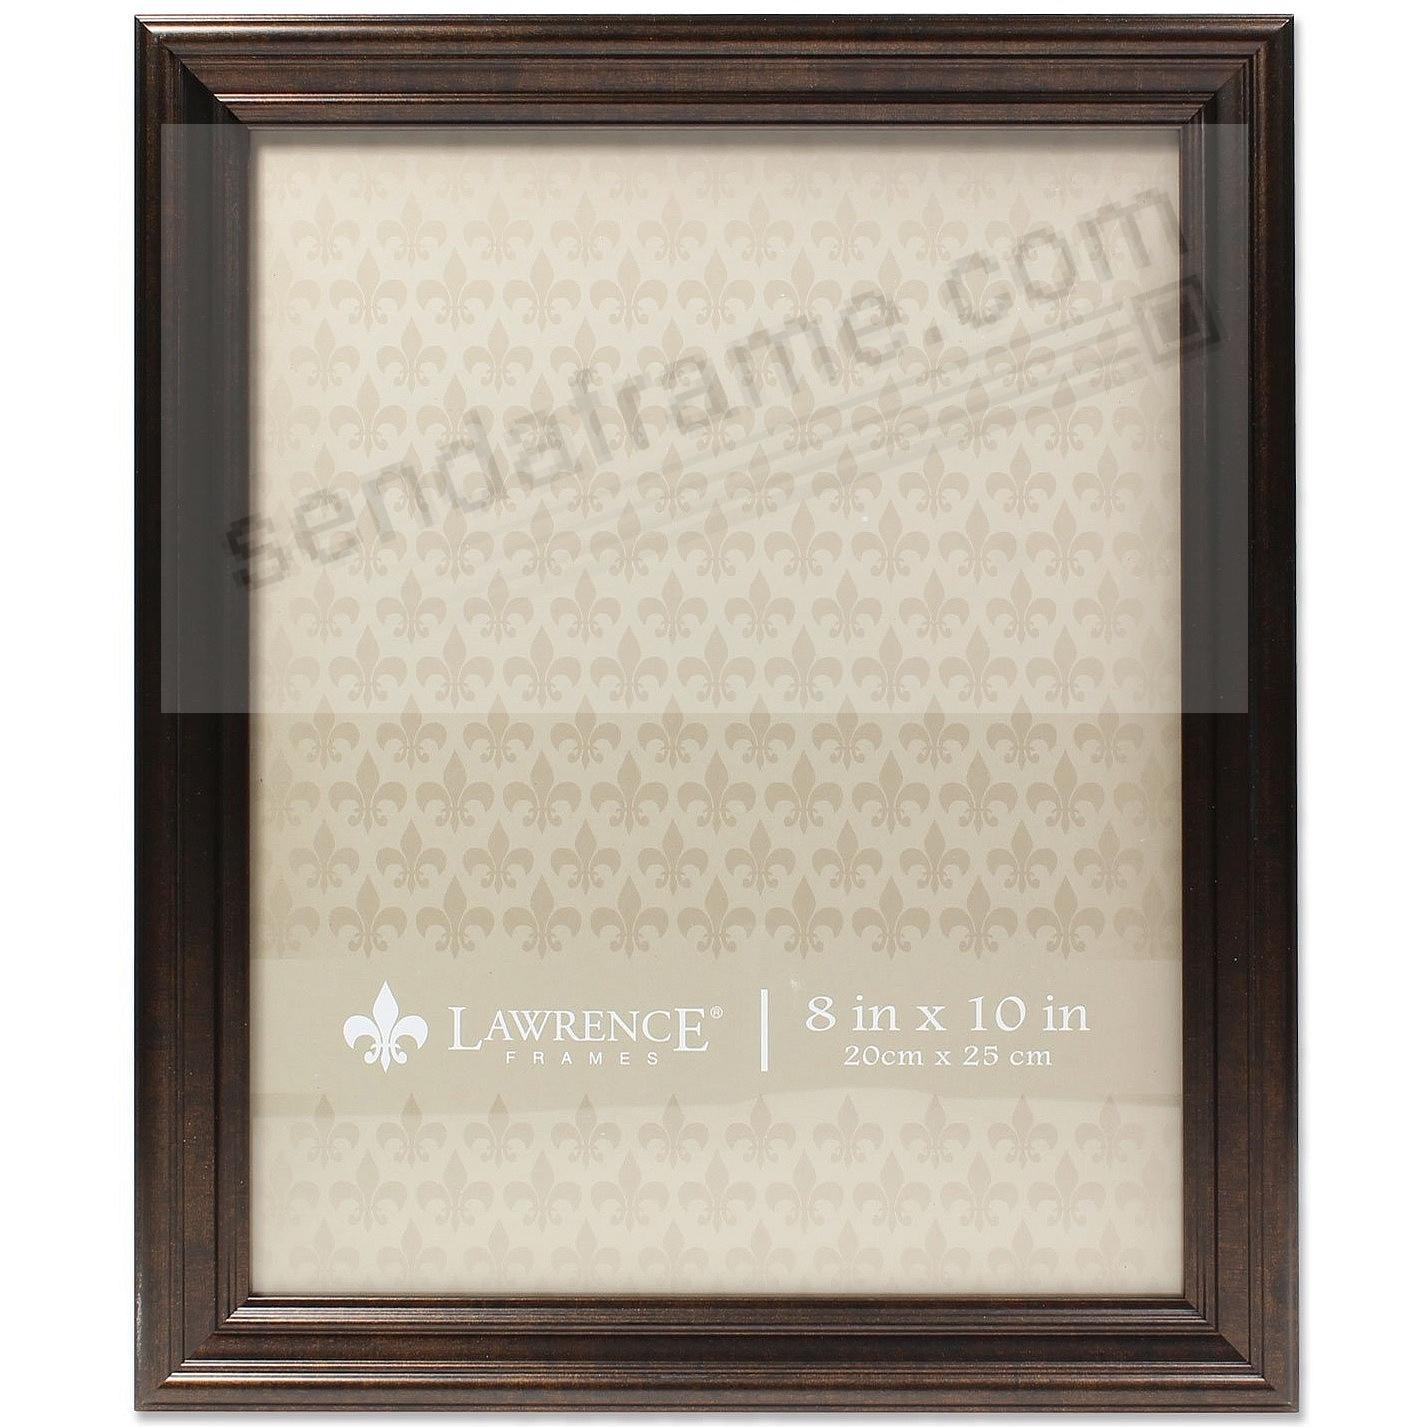 Burnished Bronze Ridged 8x10 frame by Lawrence Frames®